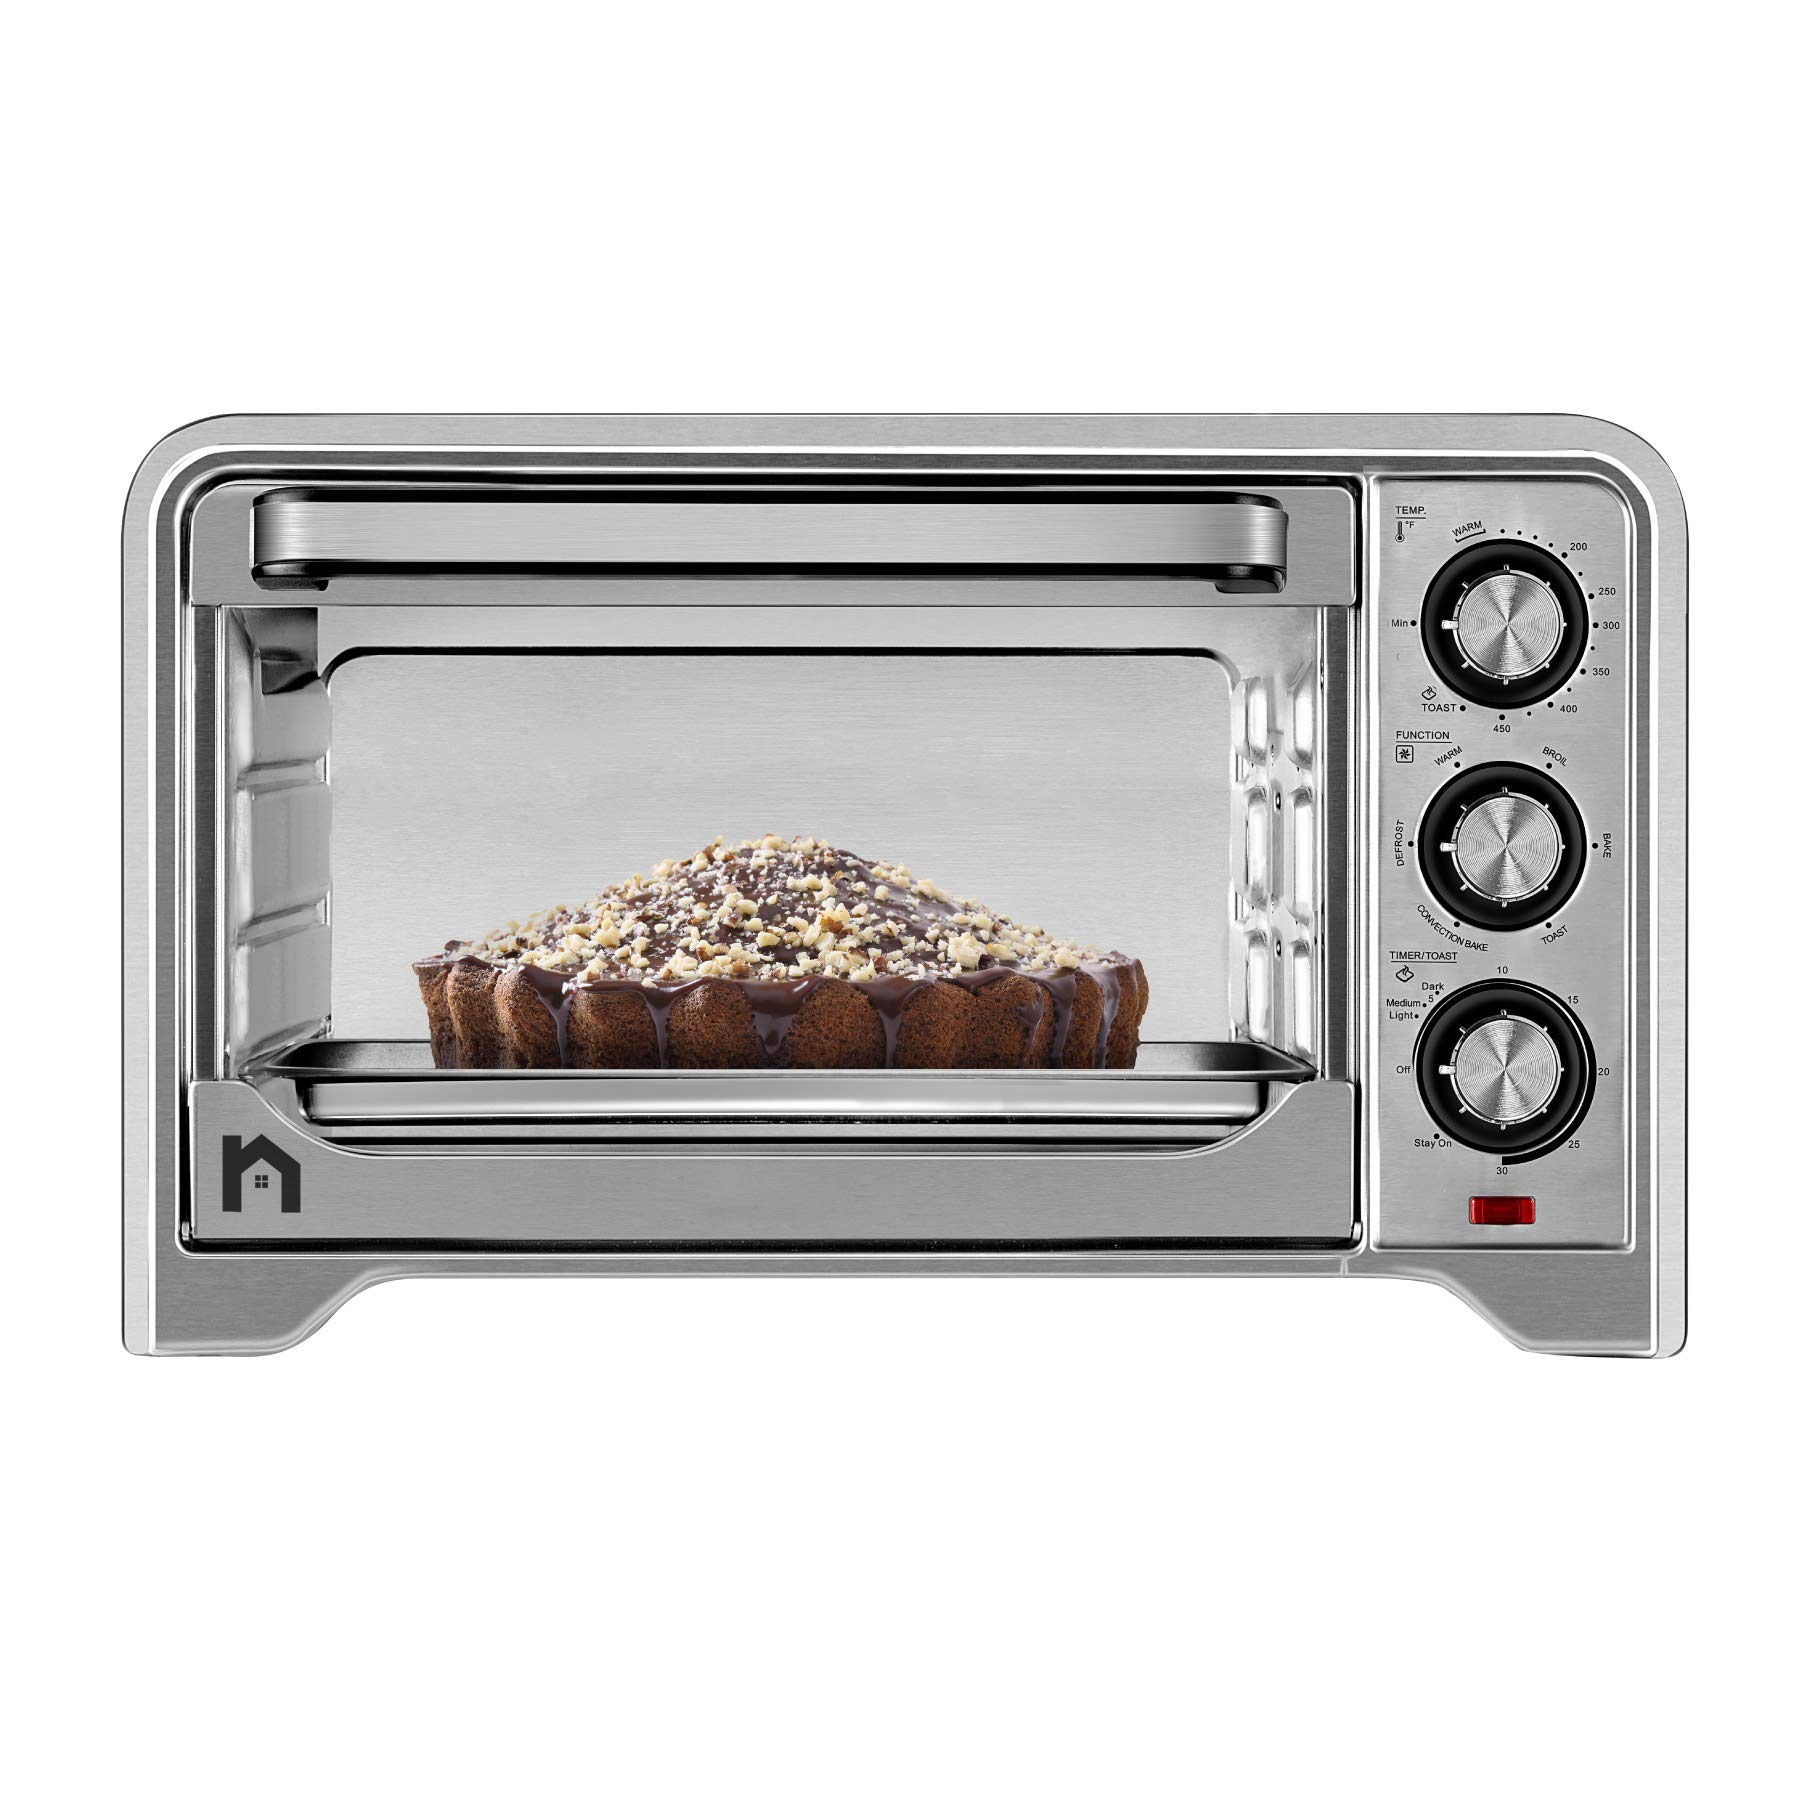 New House Kitchen Stainless Steel Toaster Countertop Convection Oven w/Multiple Temperature Control, X-Large 6 Slice, 6 Cooking Functions Include Bake, Broil, Keep Warm by New House Kitchen (Image #1)